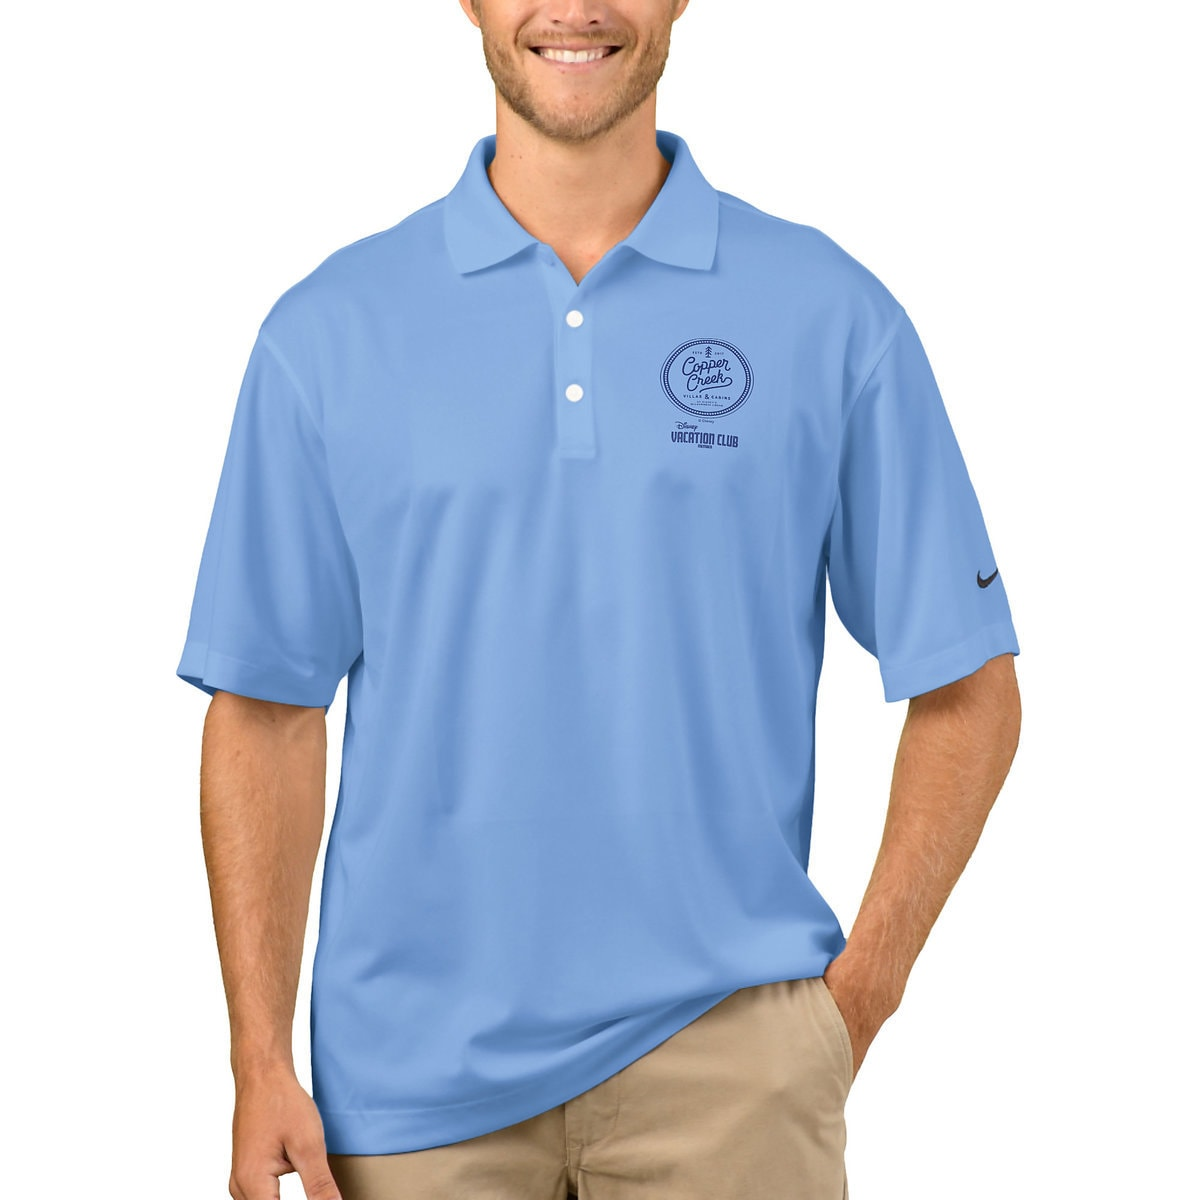 c5801dc5 Product Image of Disney Vacation Club Copper Creek Villas Nike Polo Shirt  for Men - Customizable